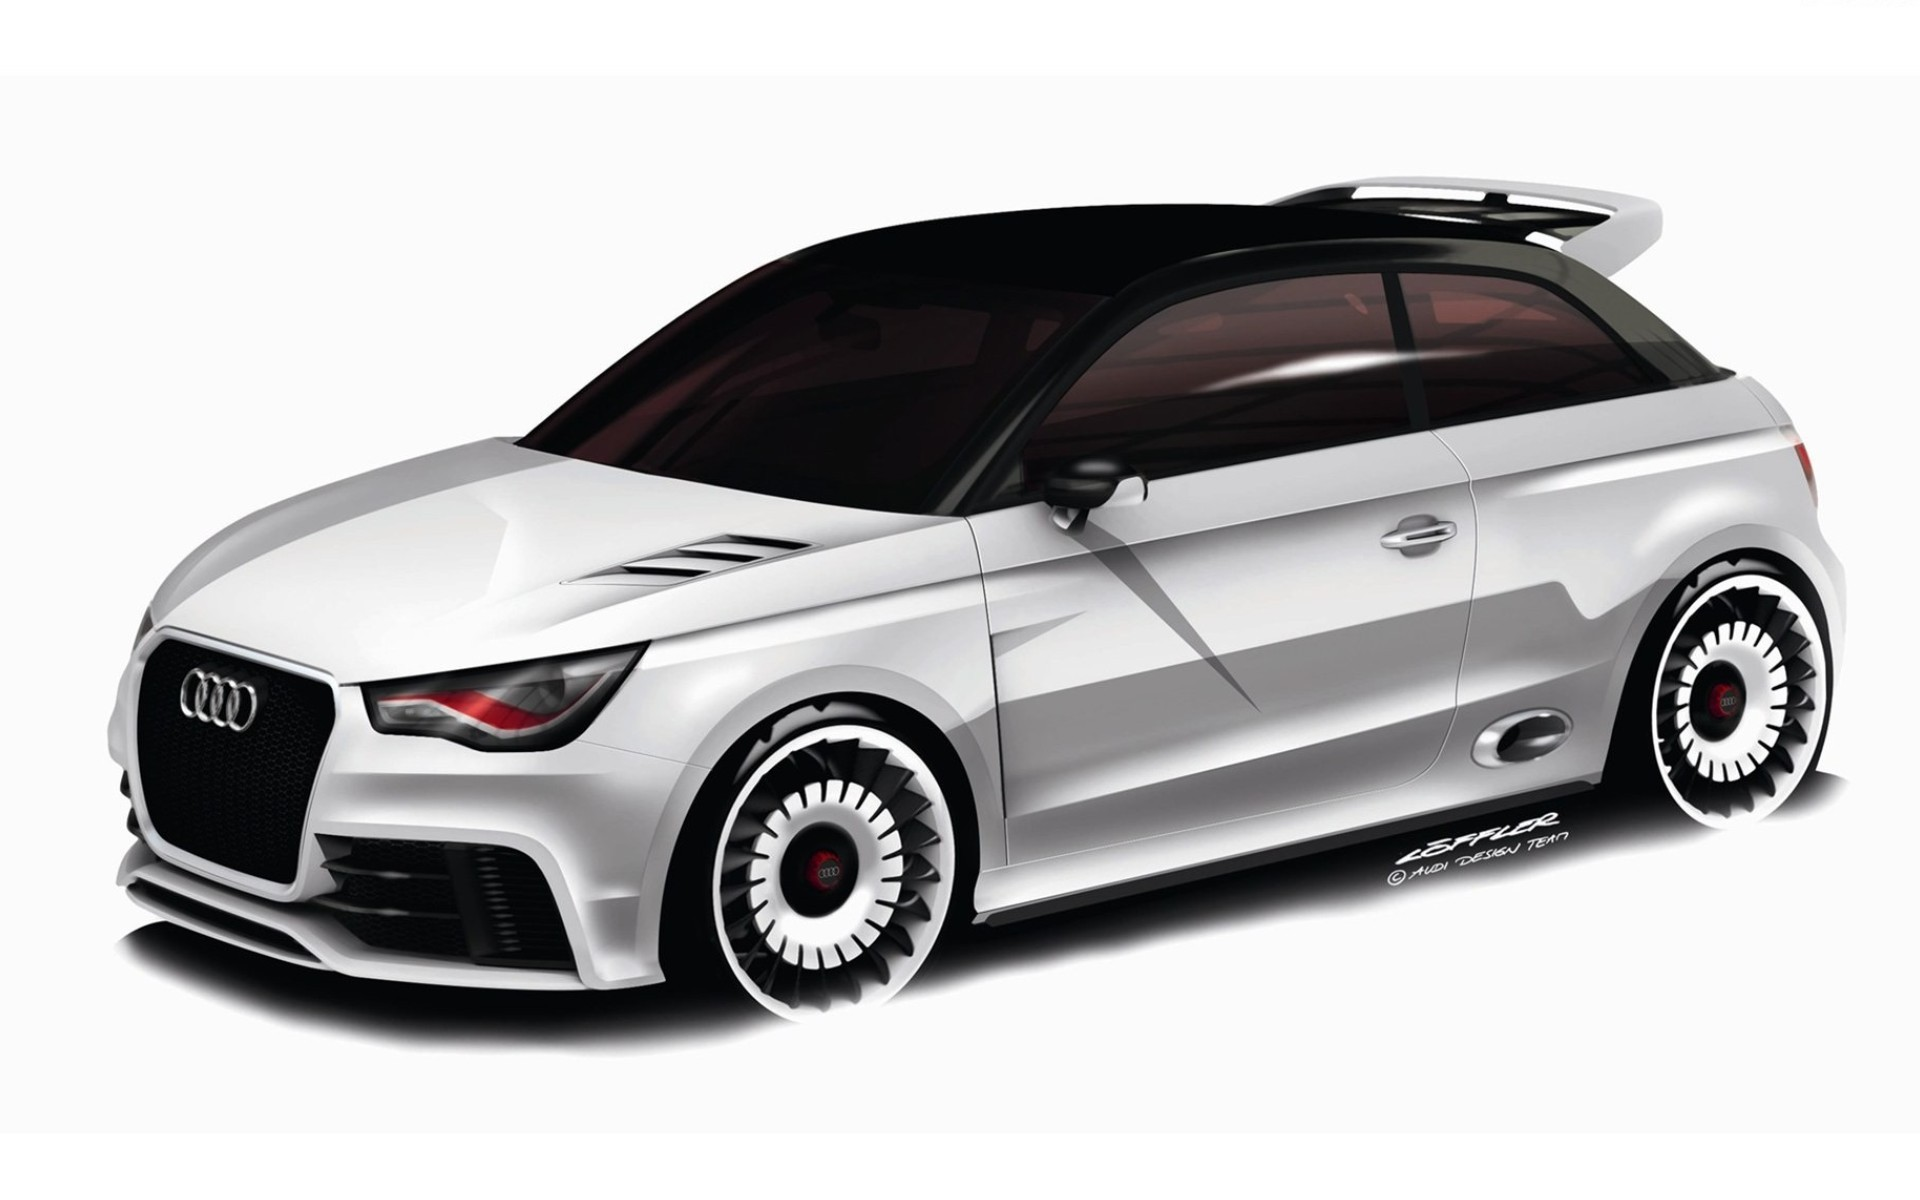 2019 Audi A1 clubsport quattro Concept photo - 3